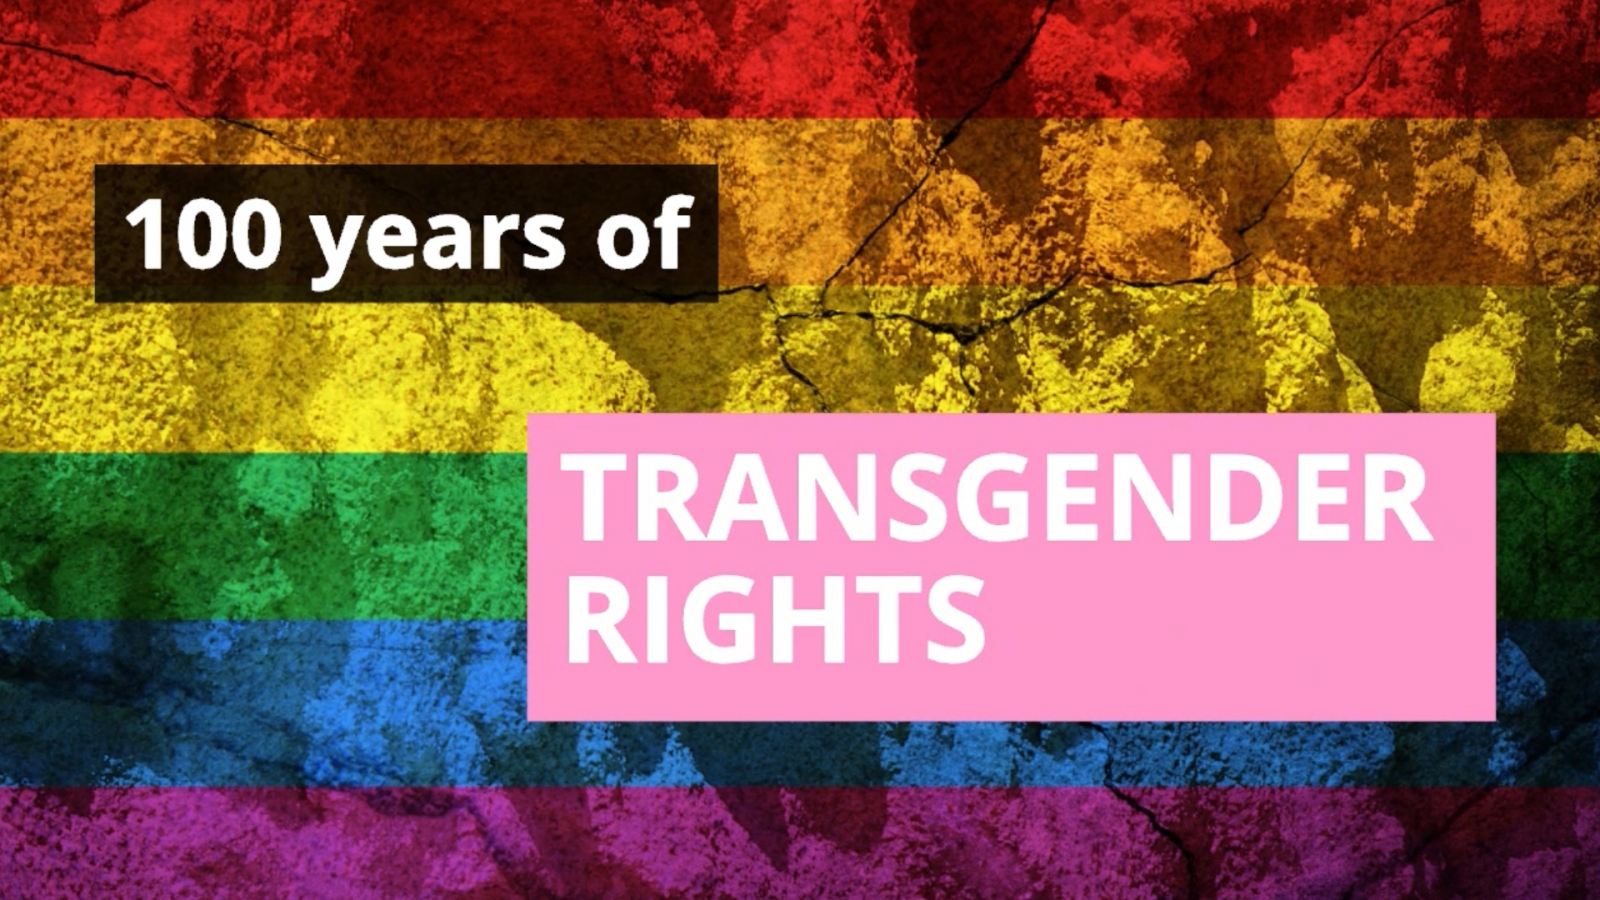 100 years of transgender rights